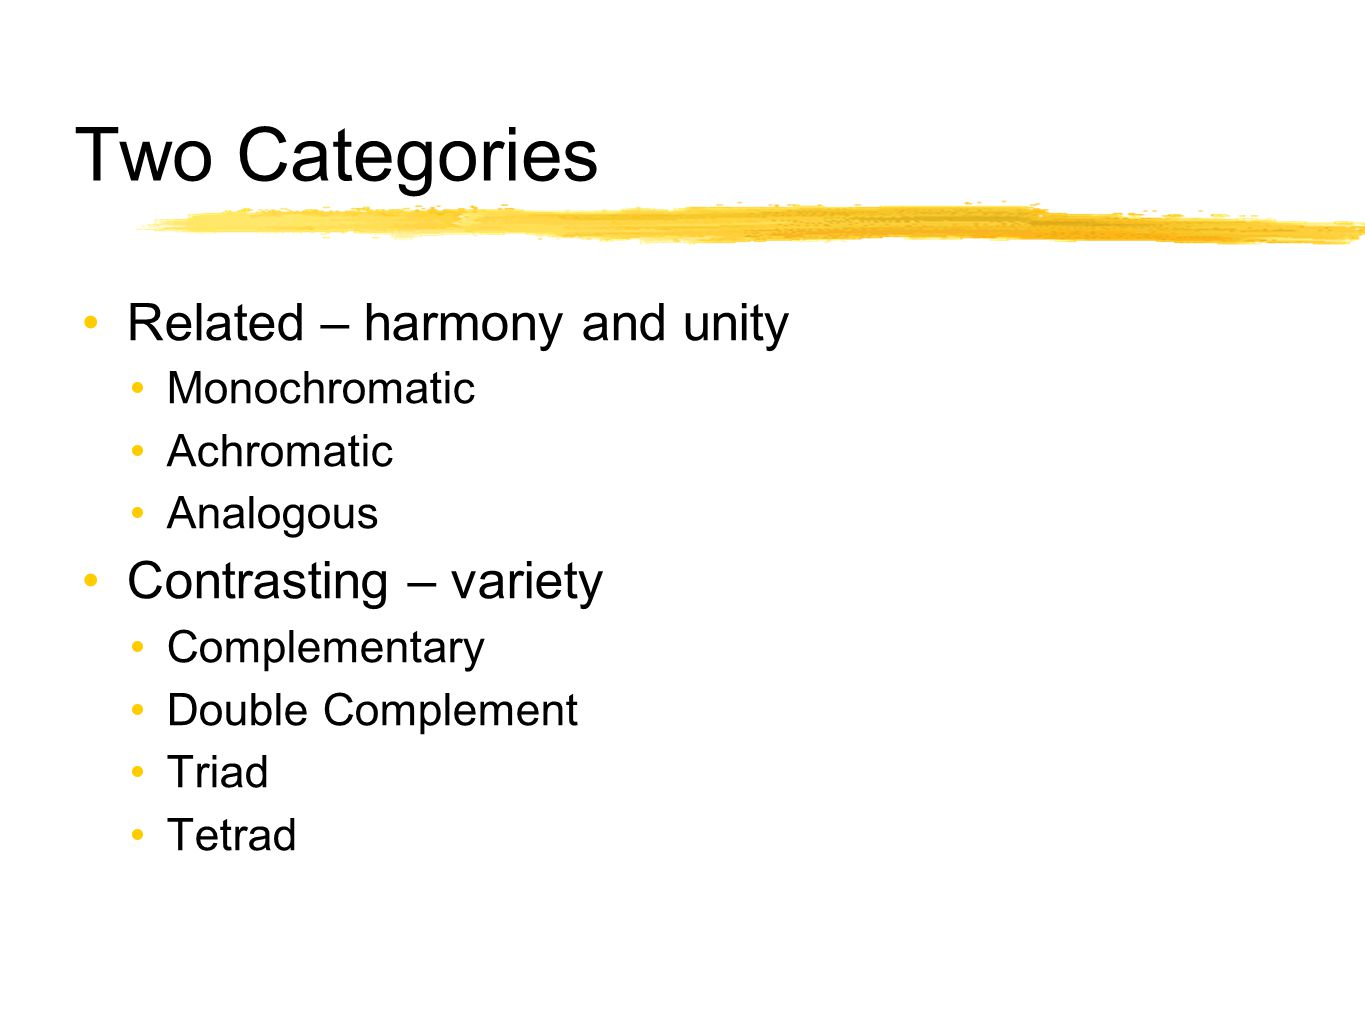 Two Categories Related – harmony and unity Contrasting – variety